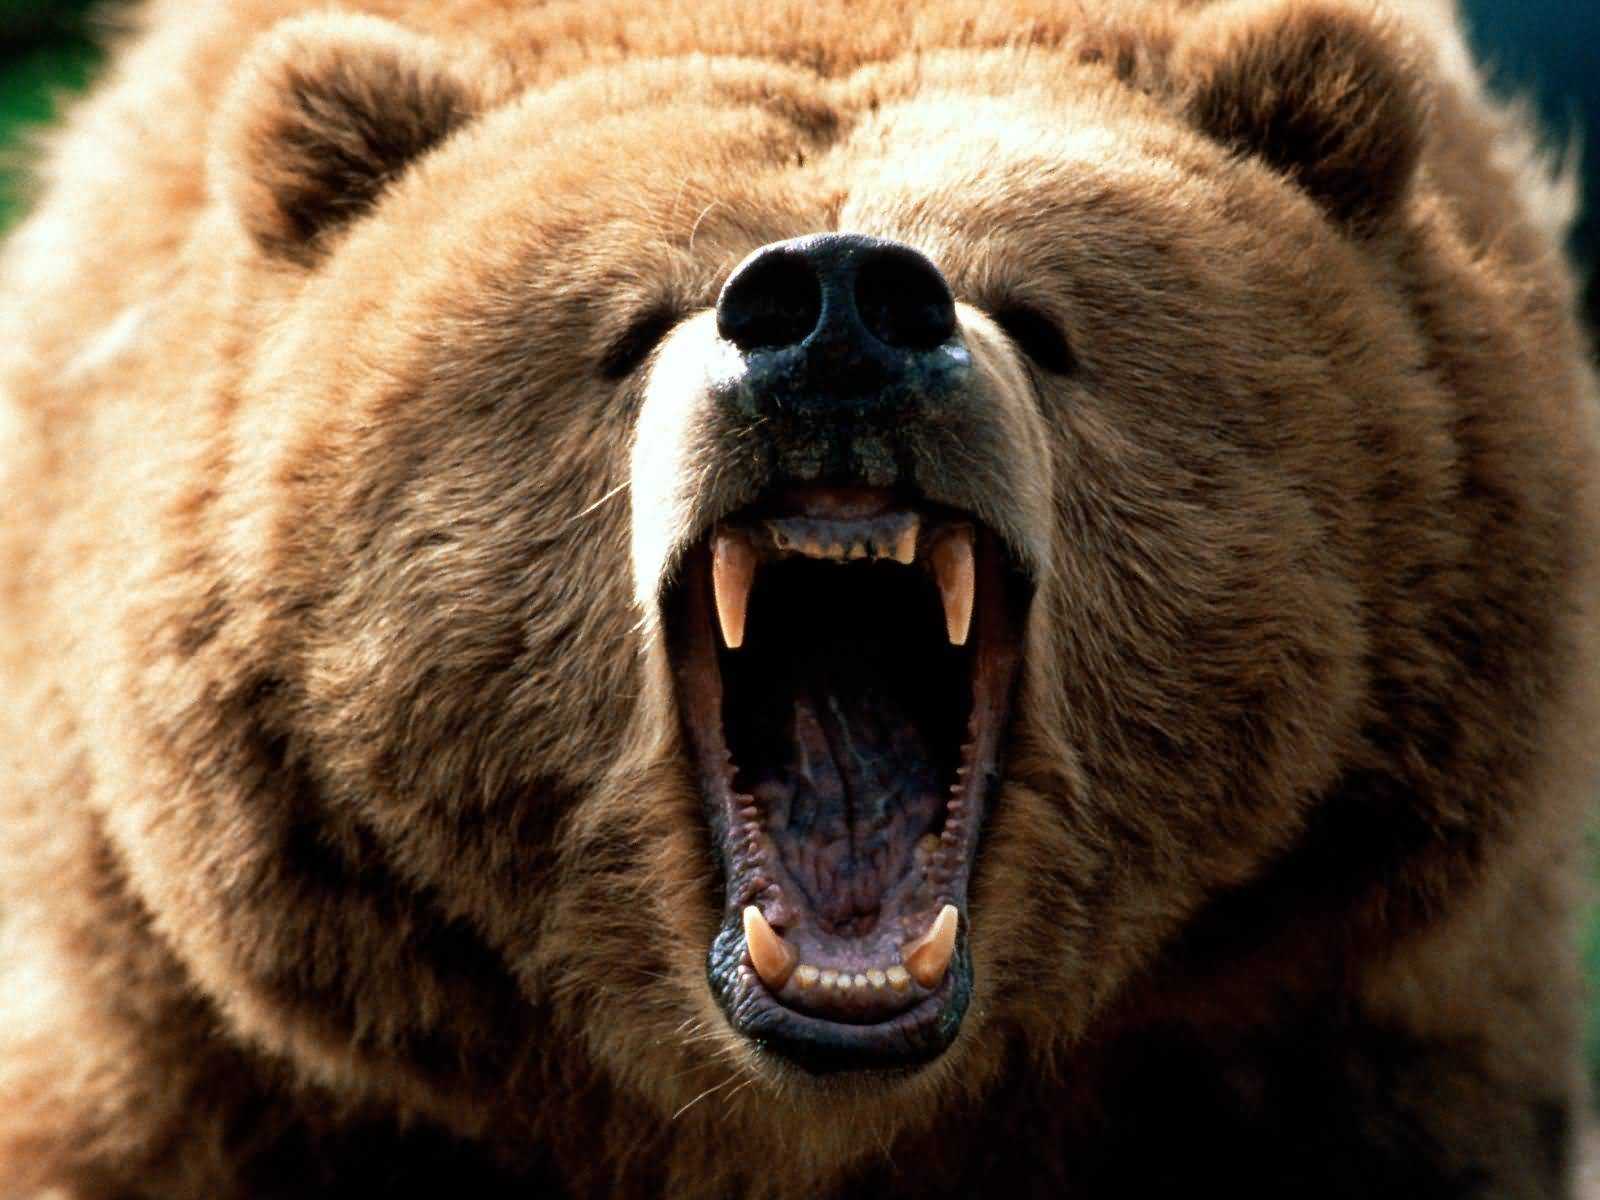 American News Broadcasting Grizzly Bear Kills Man At